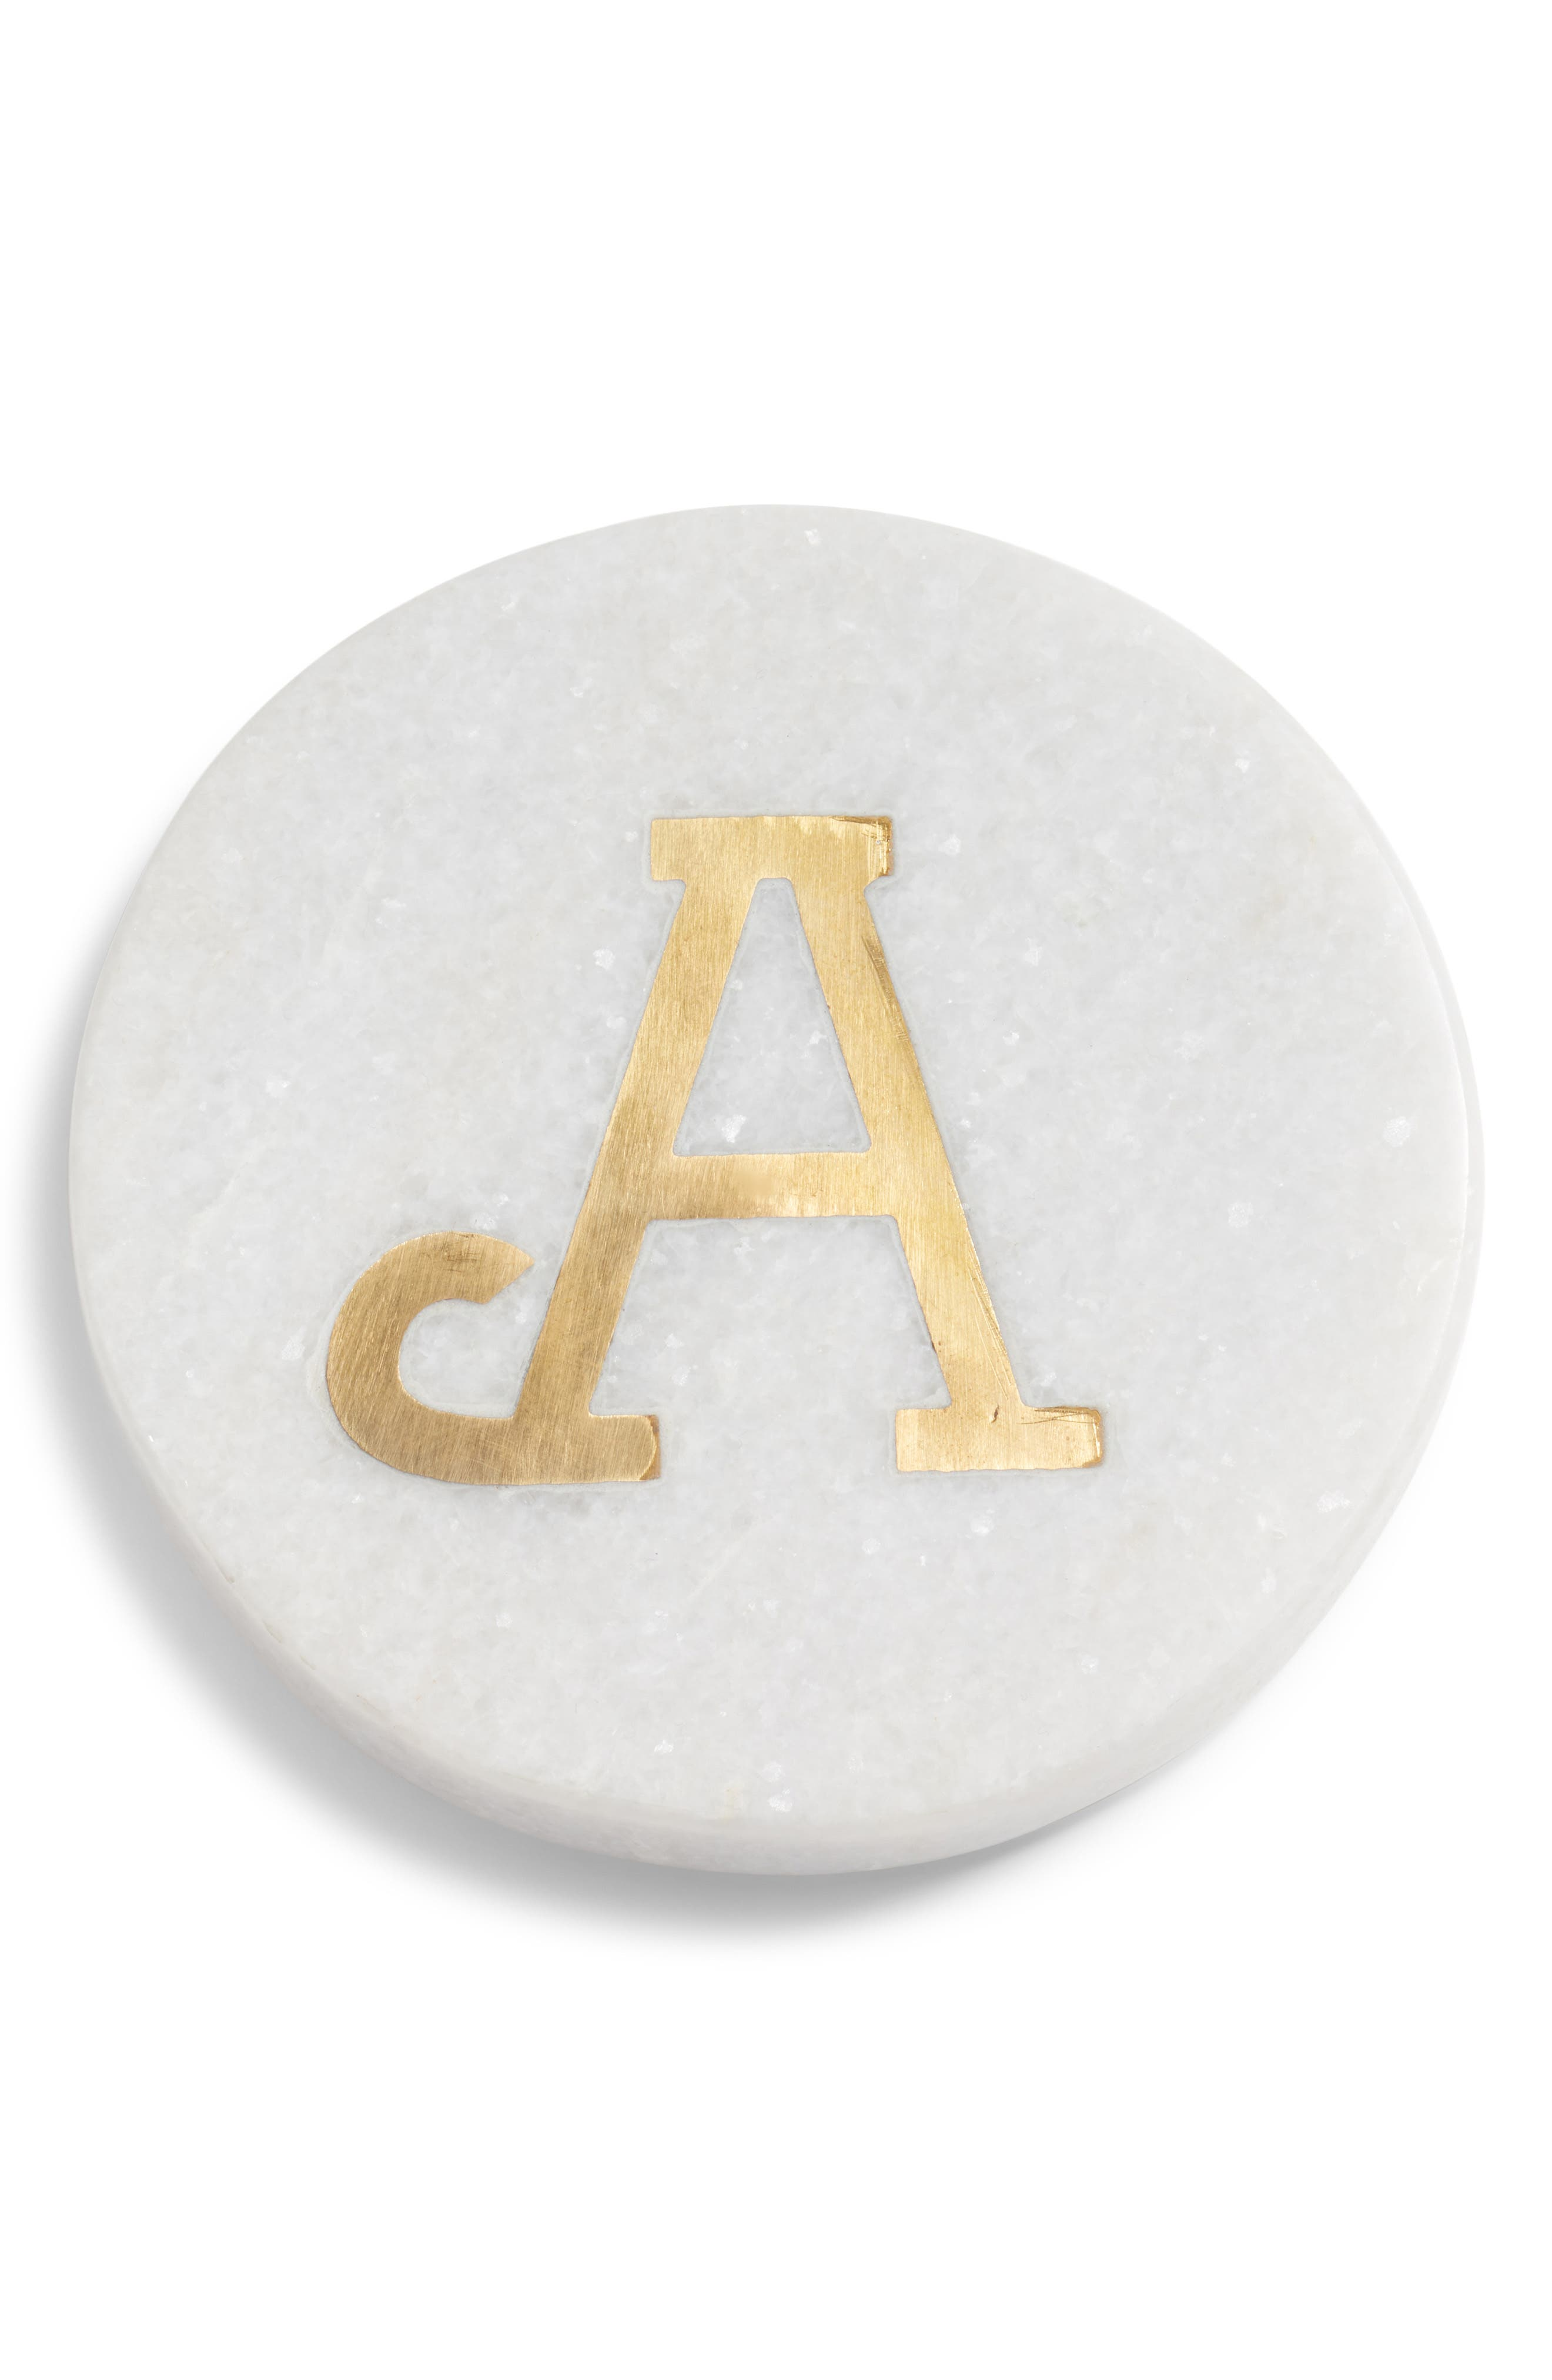 Marble Monogram Coaster,                             Main thumbnail 1, color,                             WHITE/ GOLD A